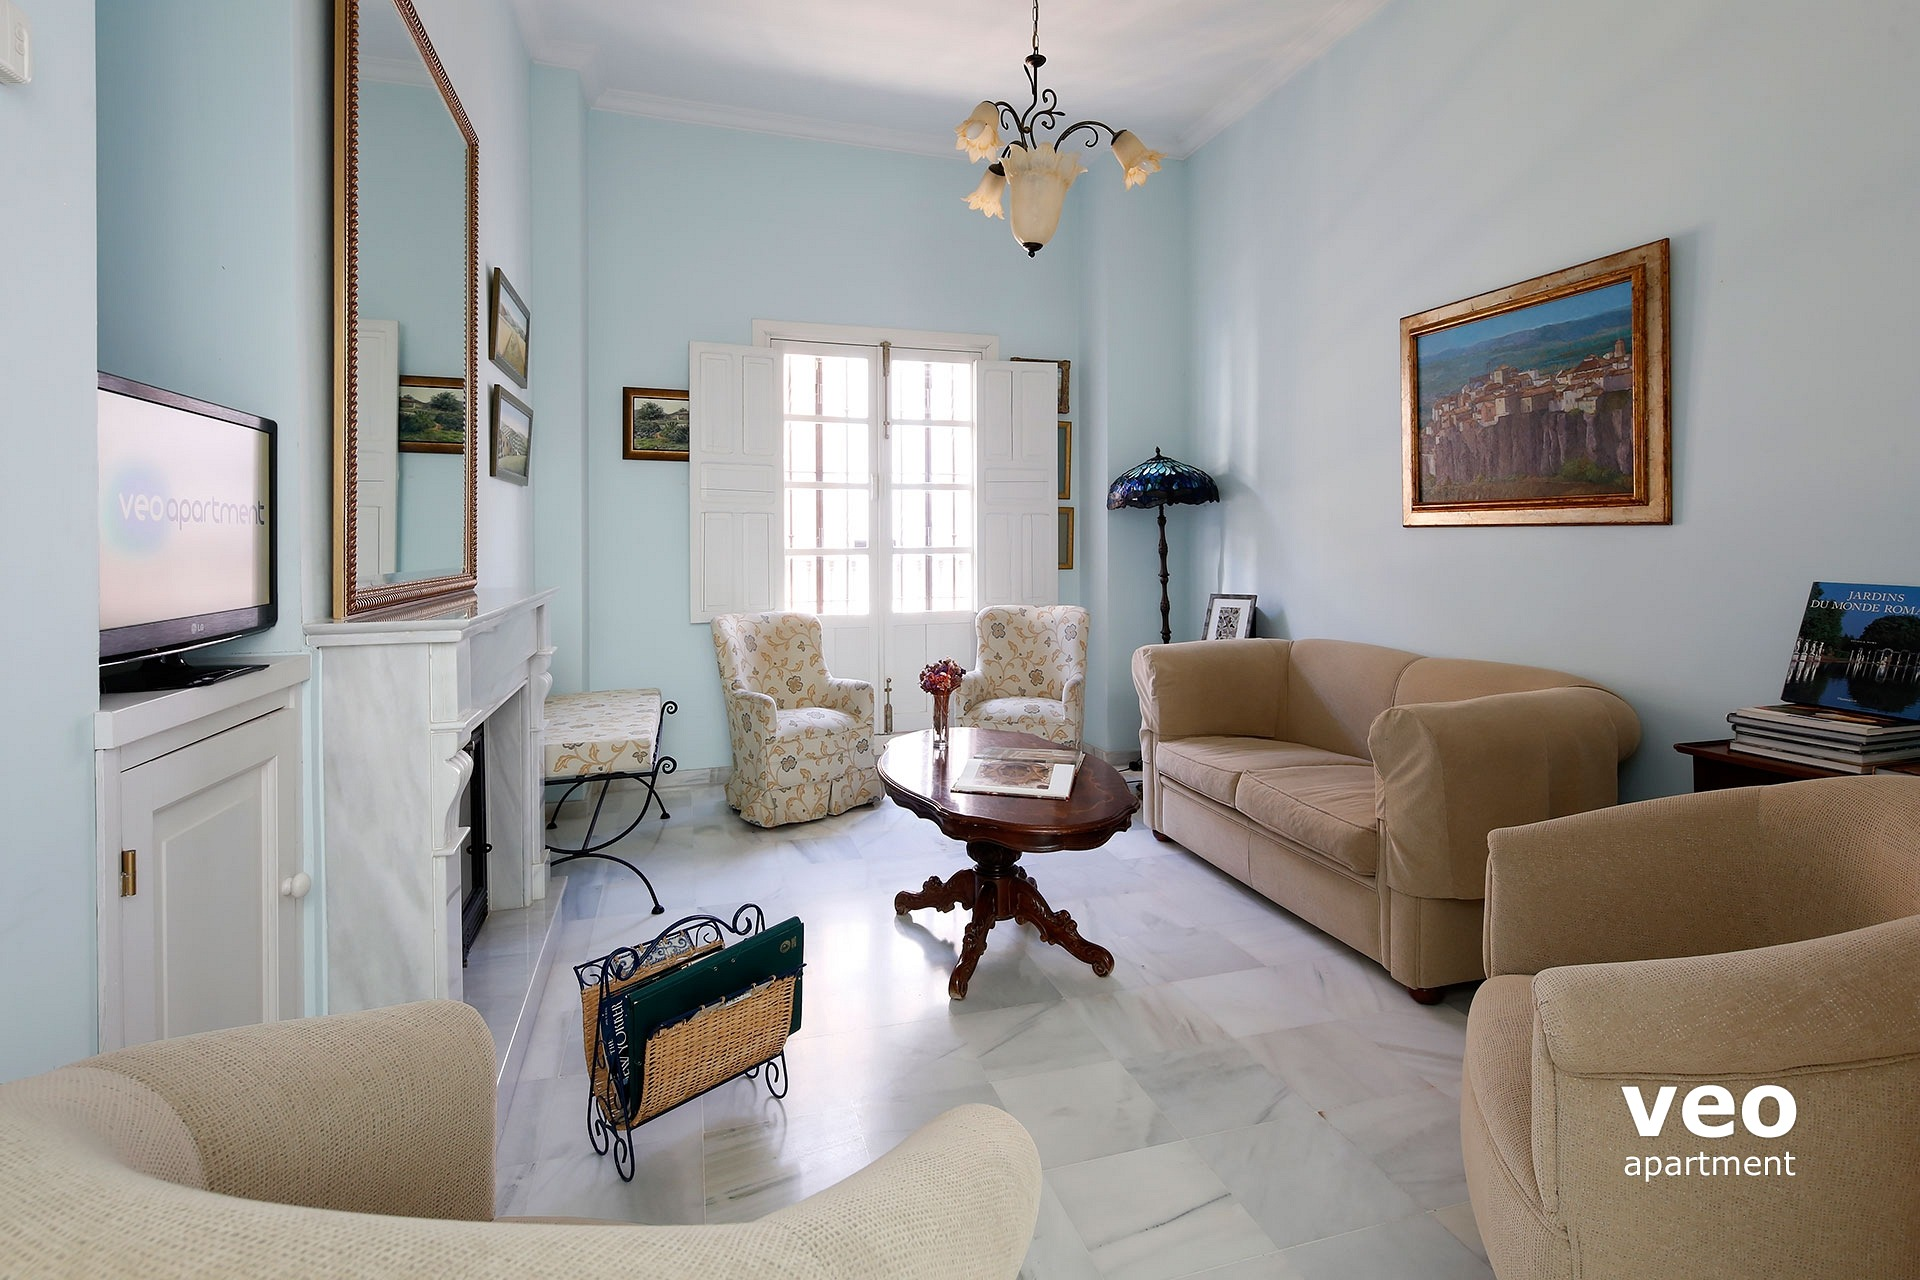 Seville apartment living room with a sofa for 2 4 armrchairs and a bench